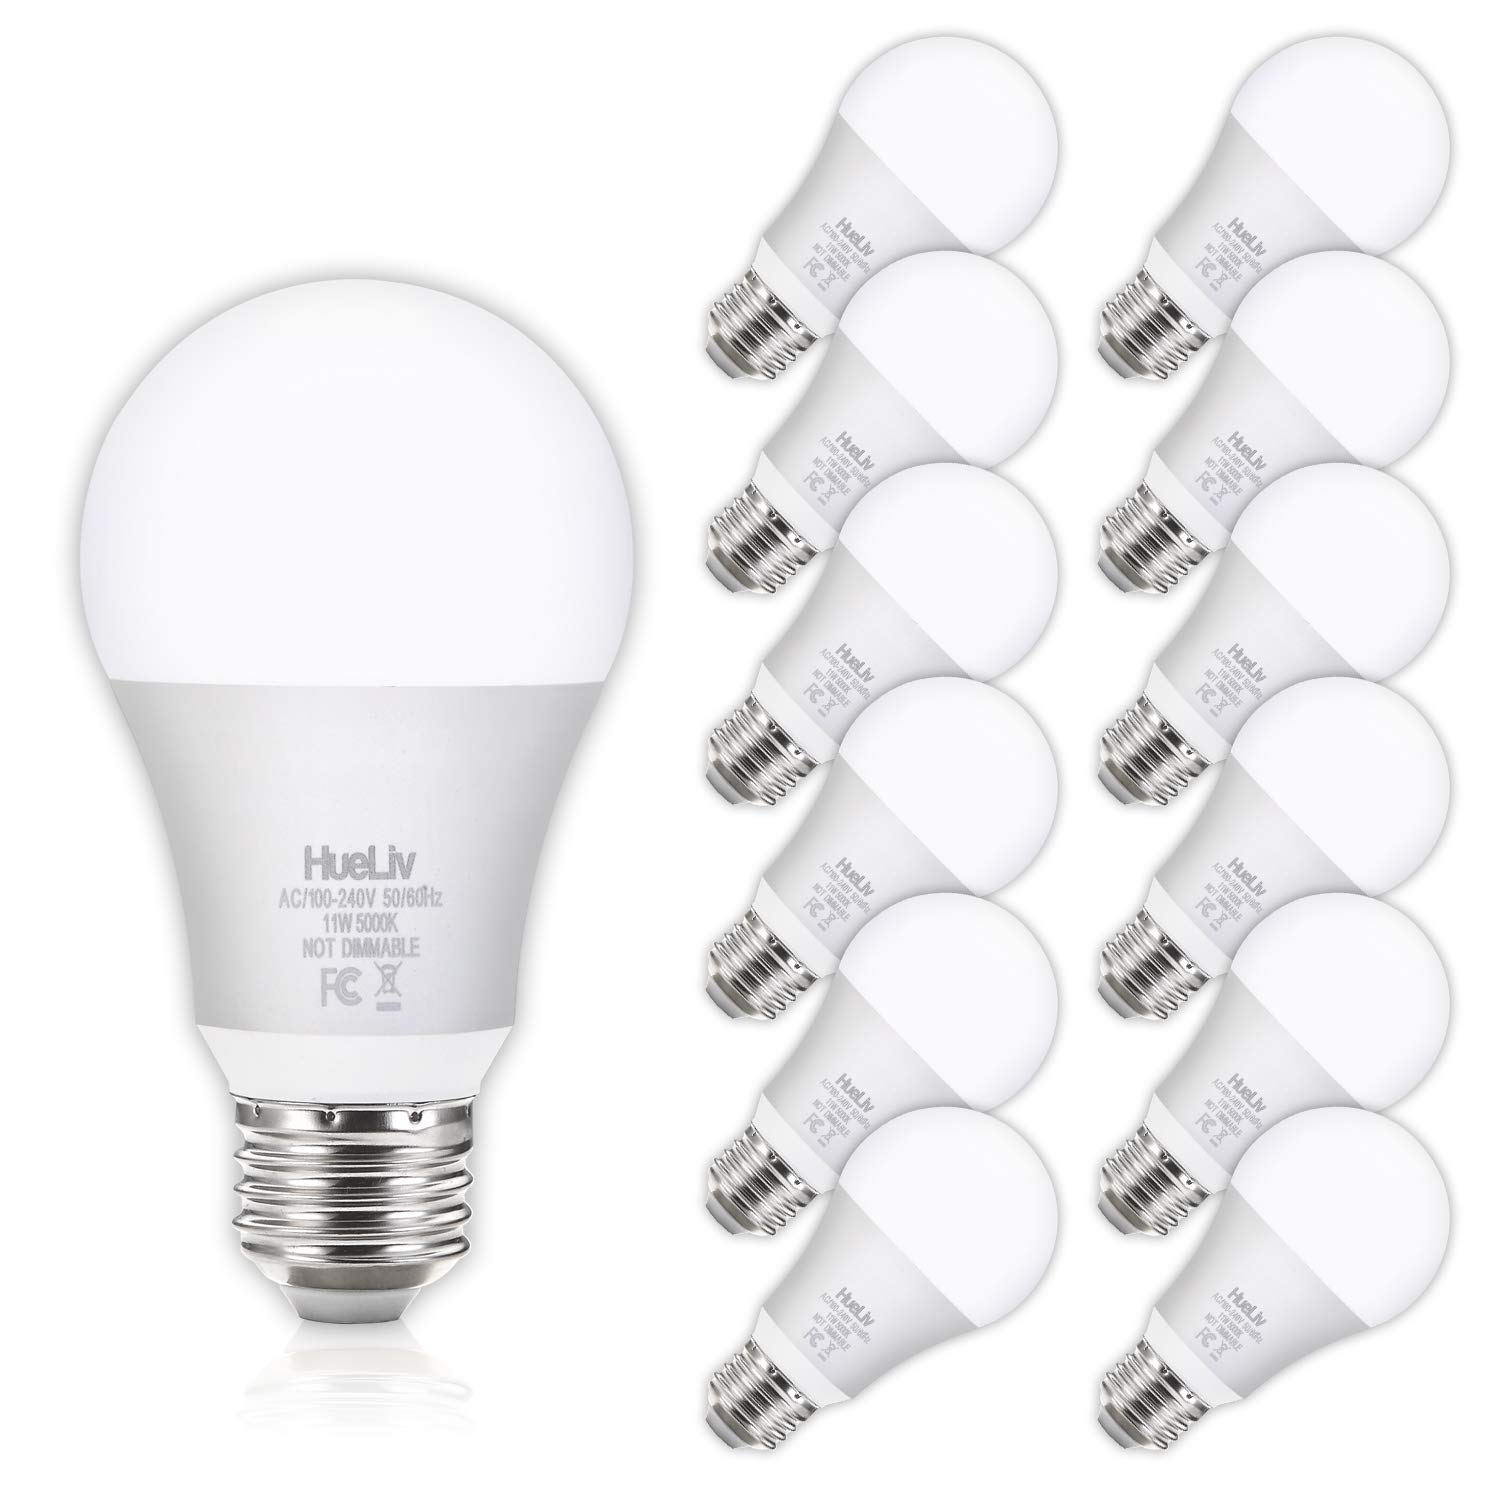 HueLiv A19 LED Light Bulbs 100 Watt Equivalent 5000K Daylight White, No Flicker E26 Medium Screw Base Bulbs, 1100Lumens, Non Dimmable, 12Pack